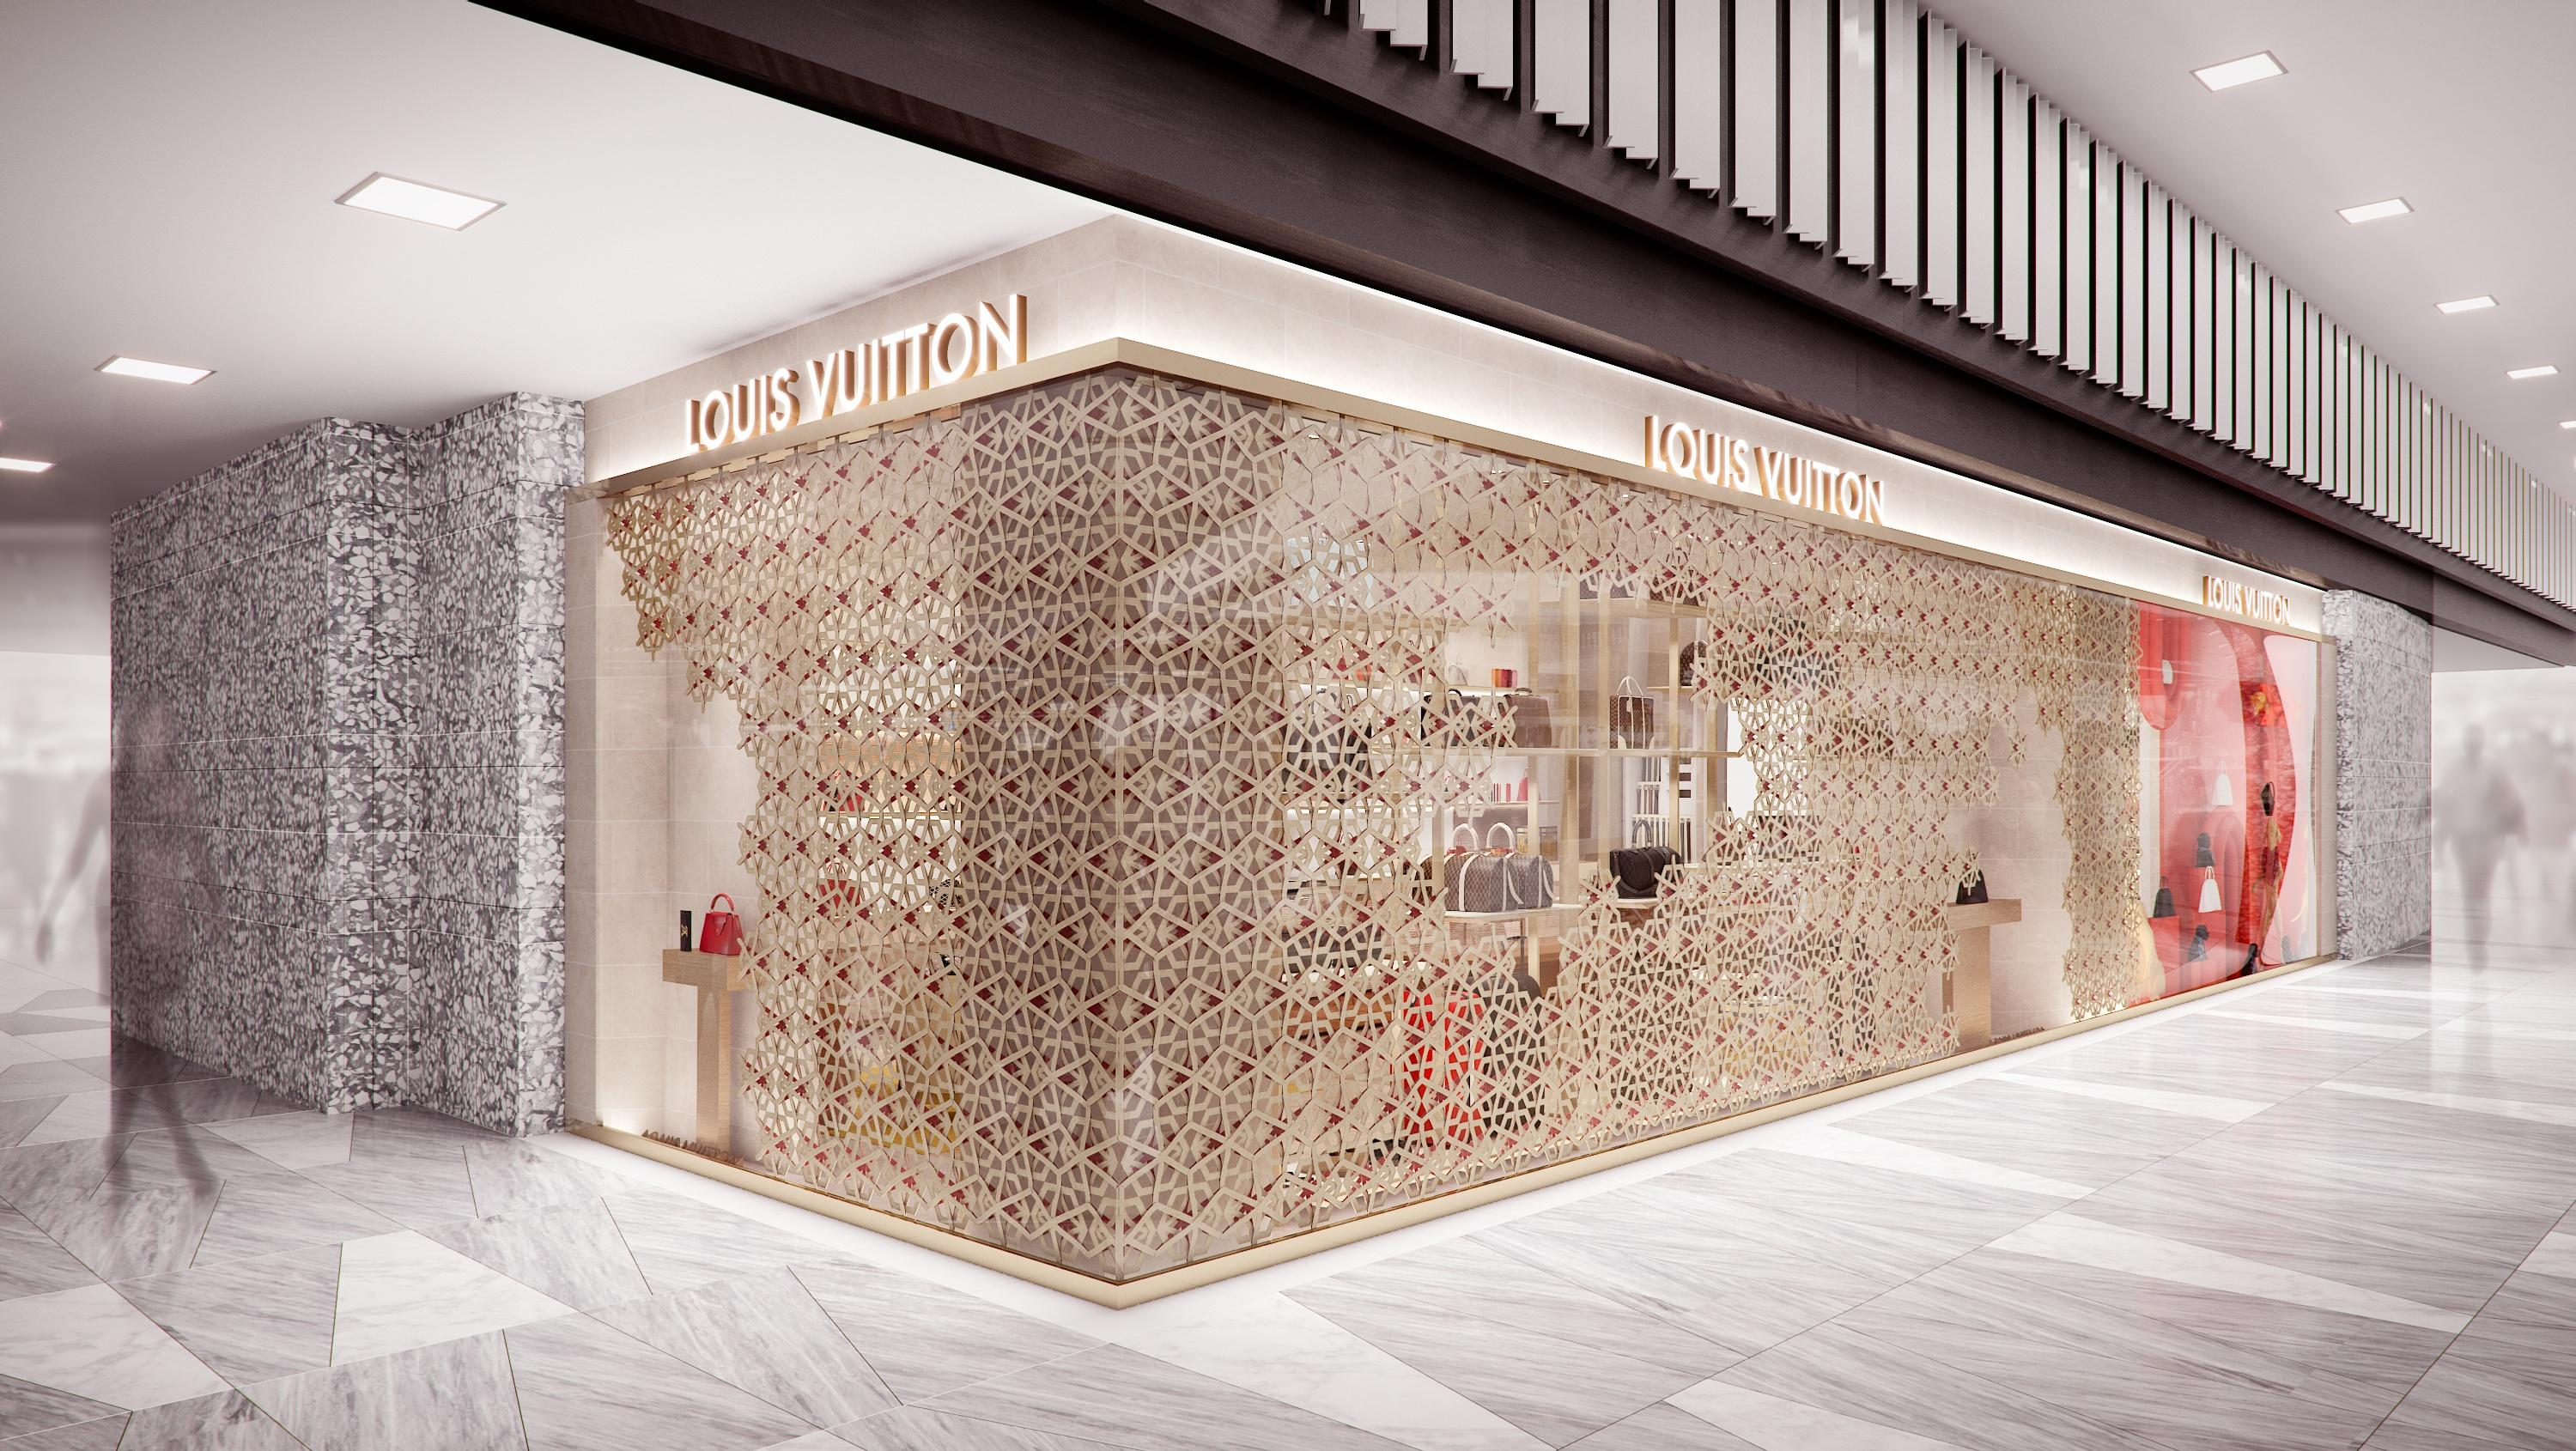 Louis Vuitton to open at Hudson Yards New York